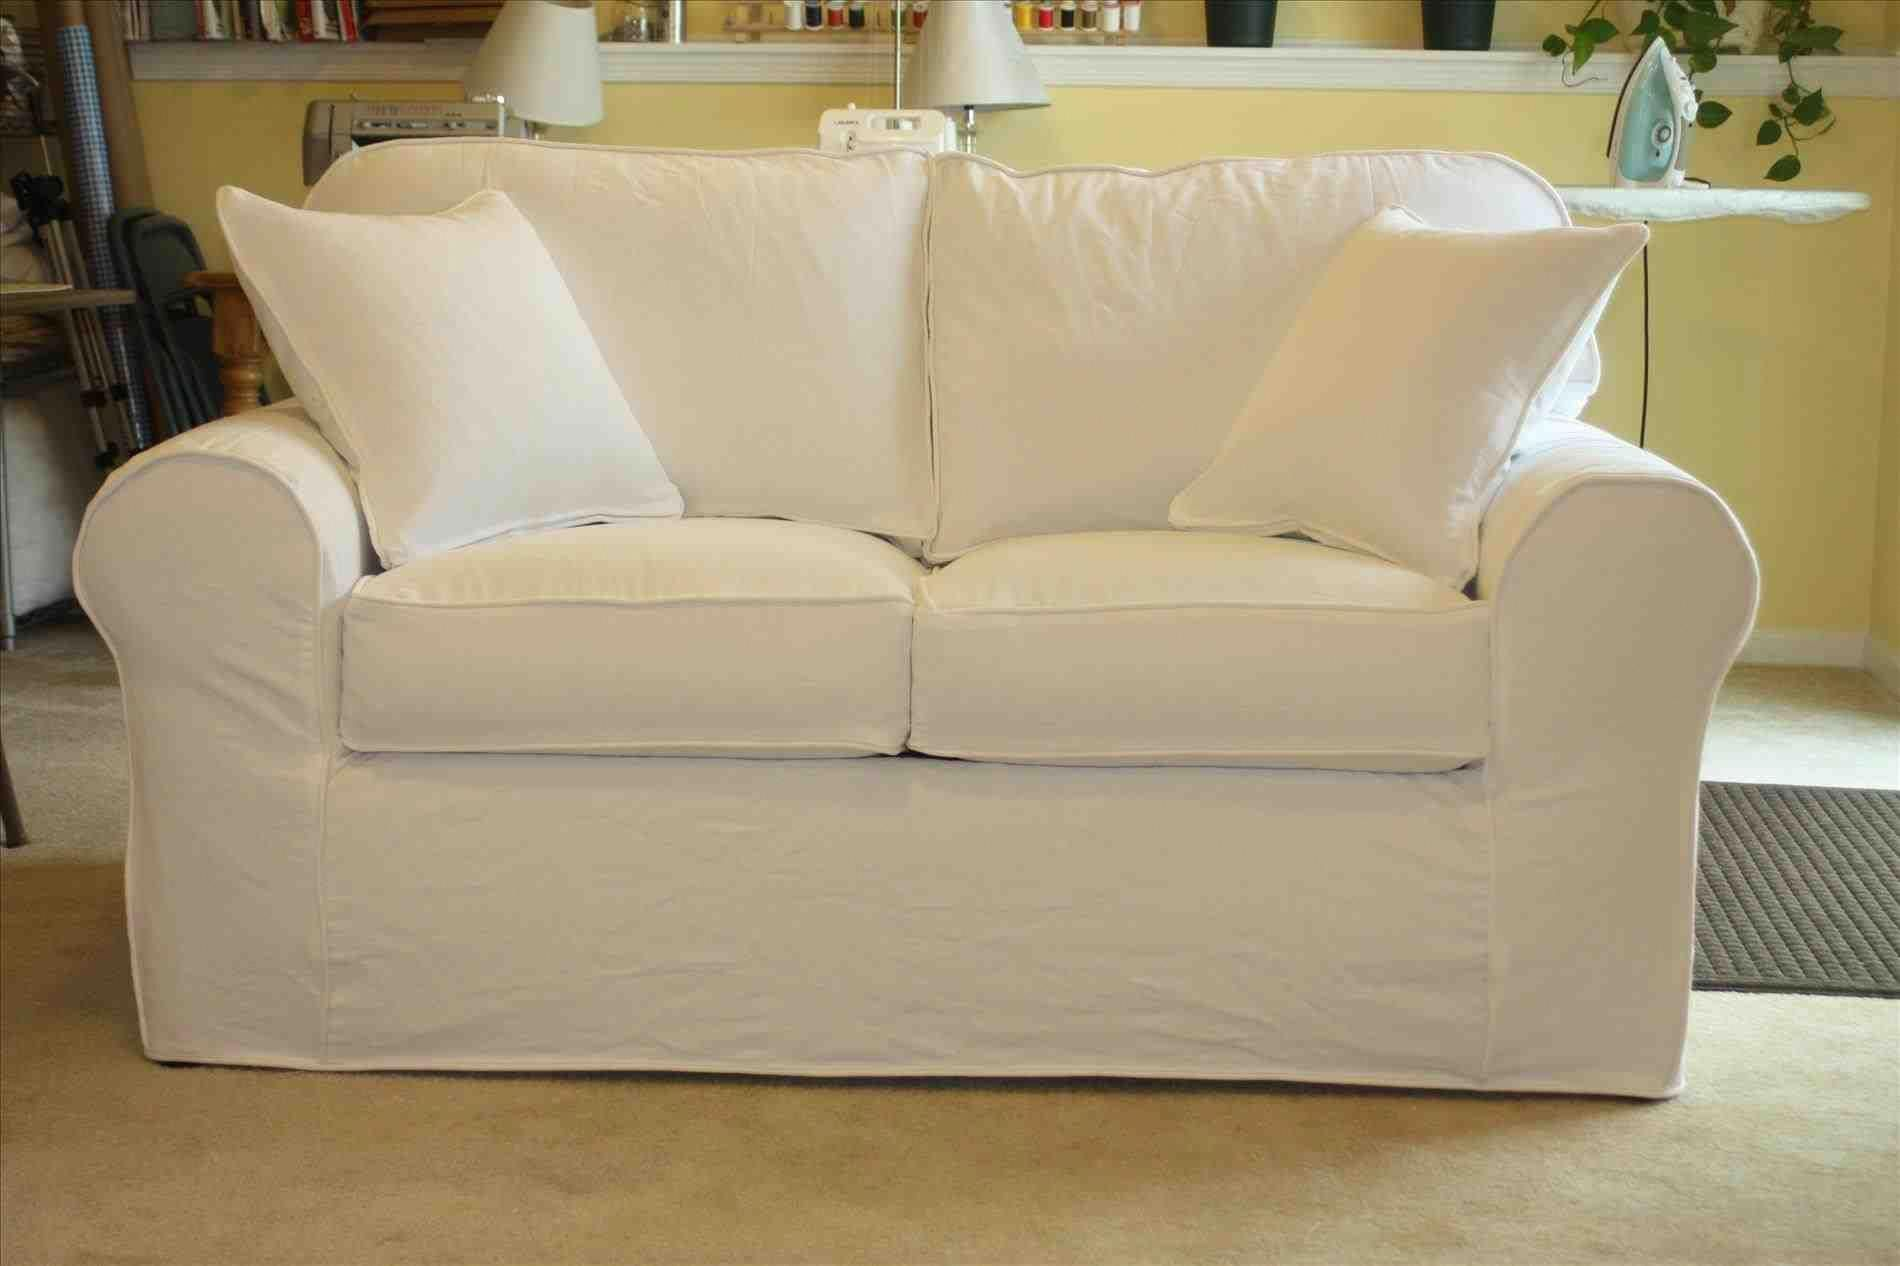 Cheap Sofa And Loveseat Covers Couch And Loveseat Covers Arm